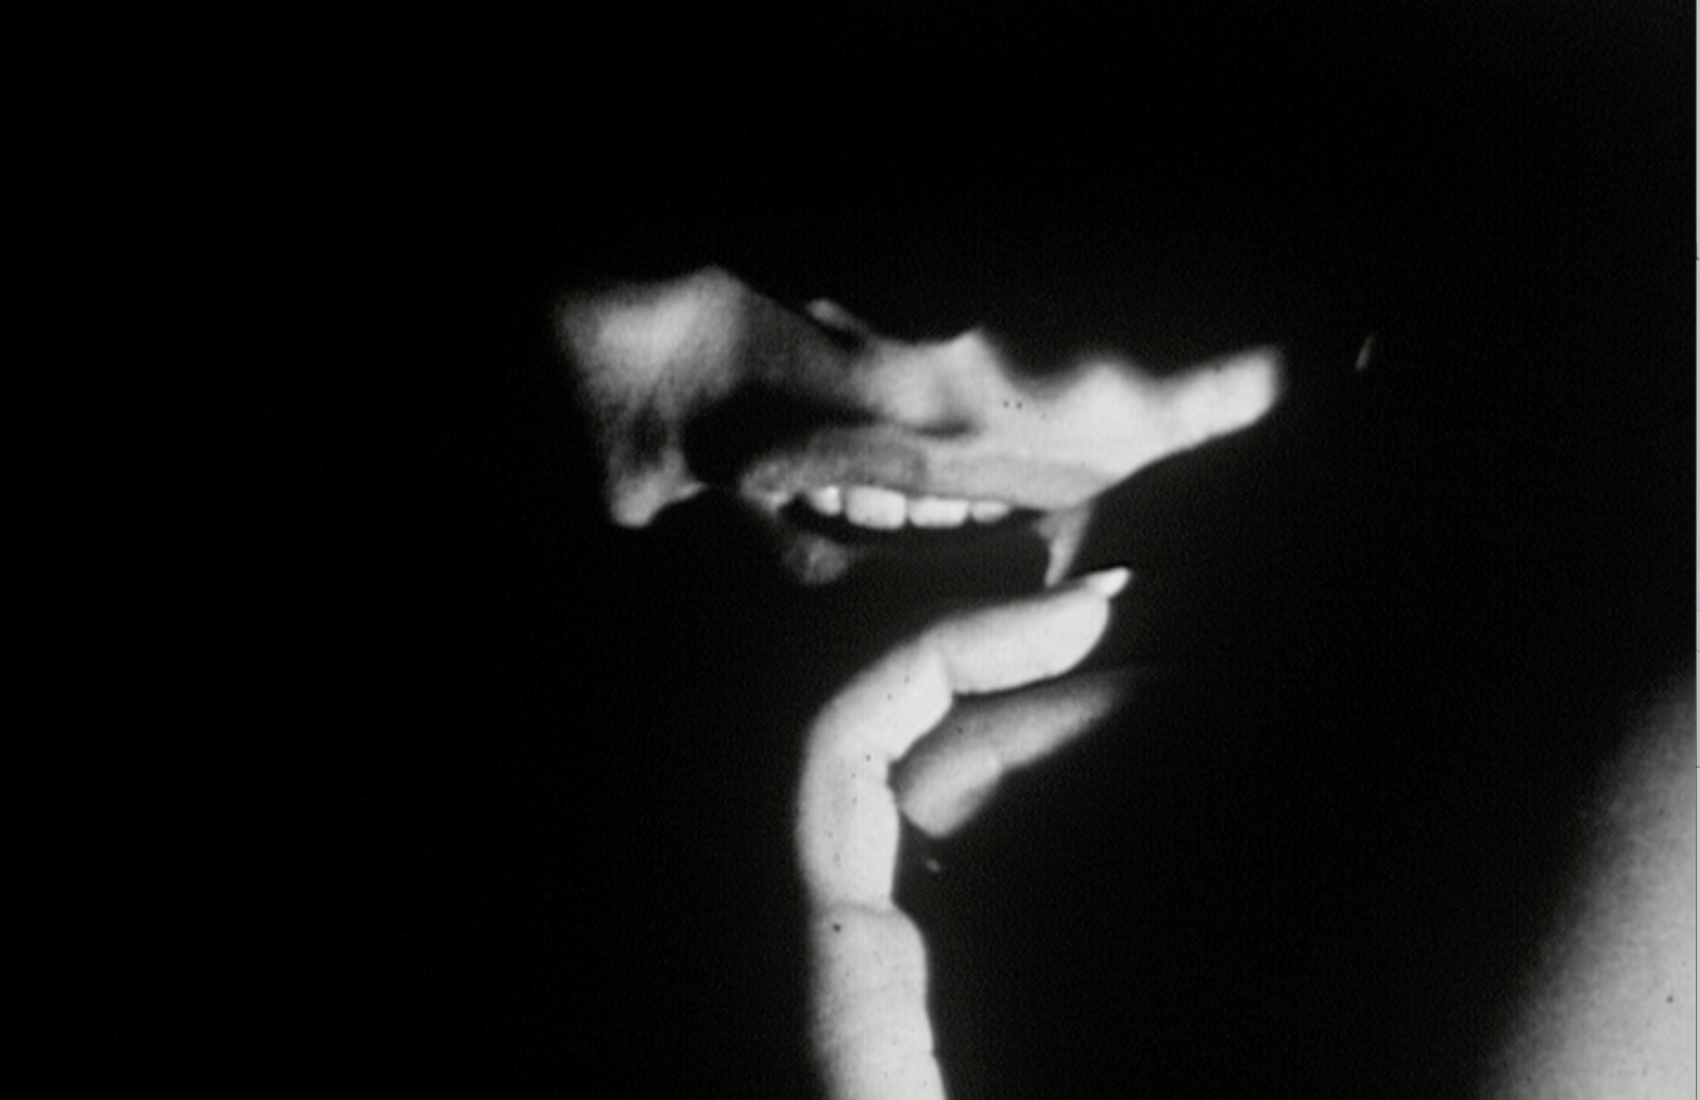 Still from Warhol's short films. Credit: Andy Warhol - Courtesy of Hedges Projects